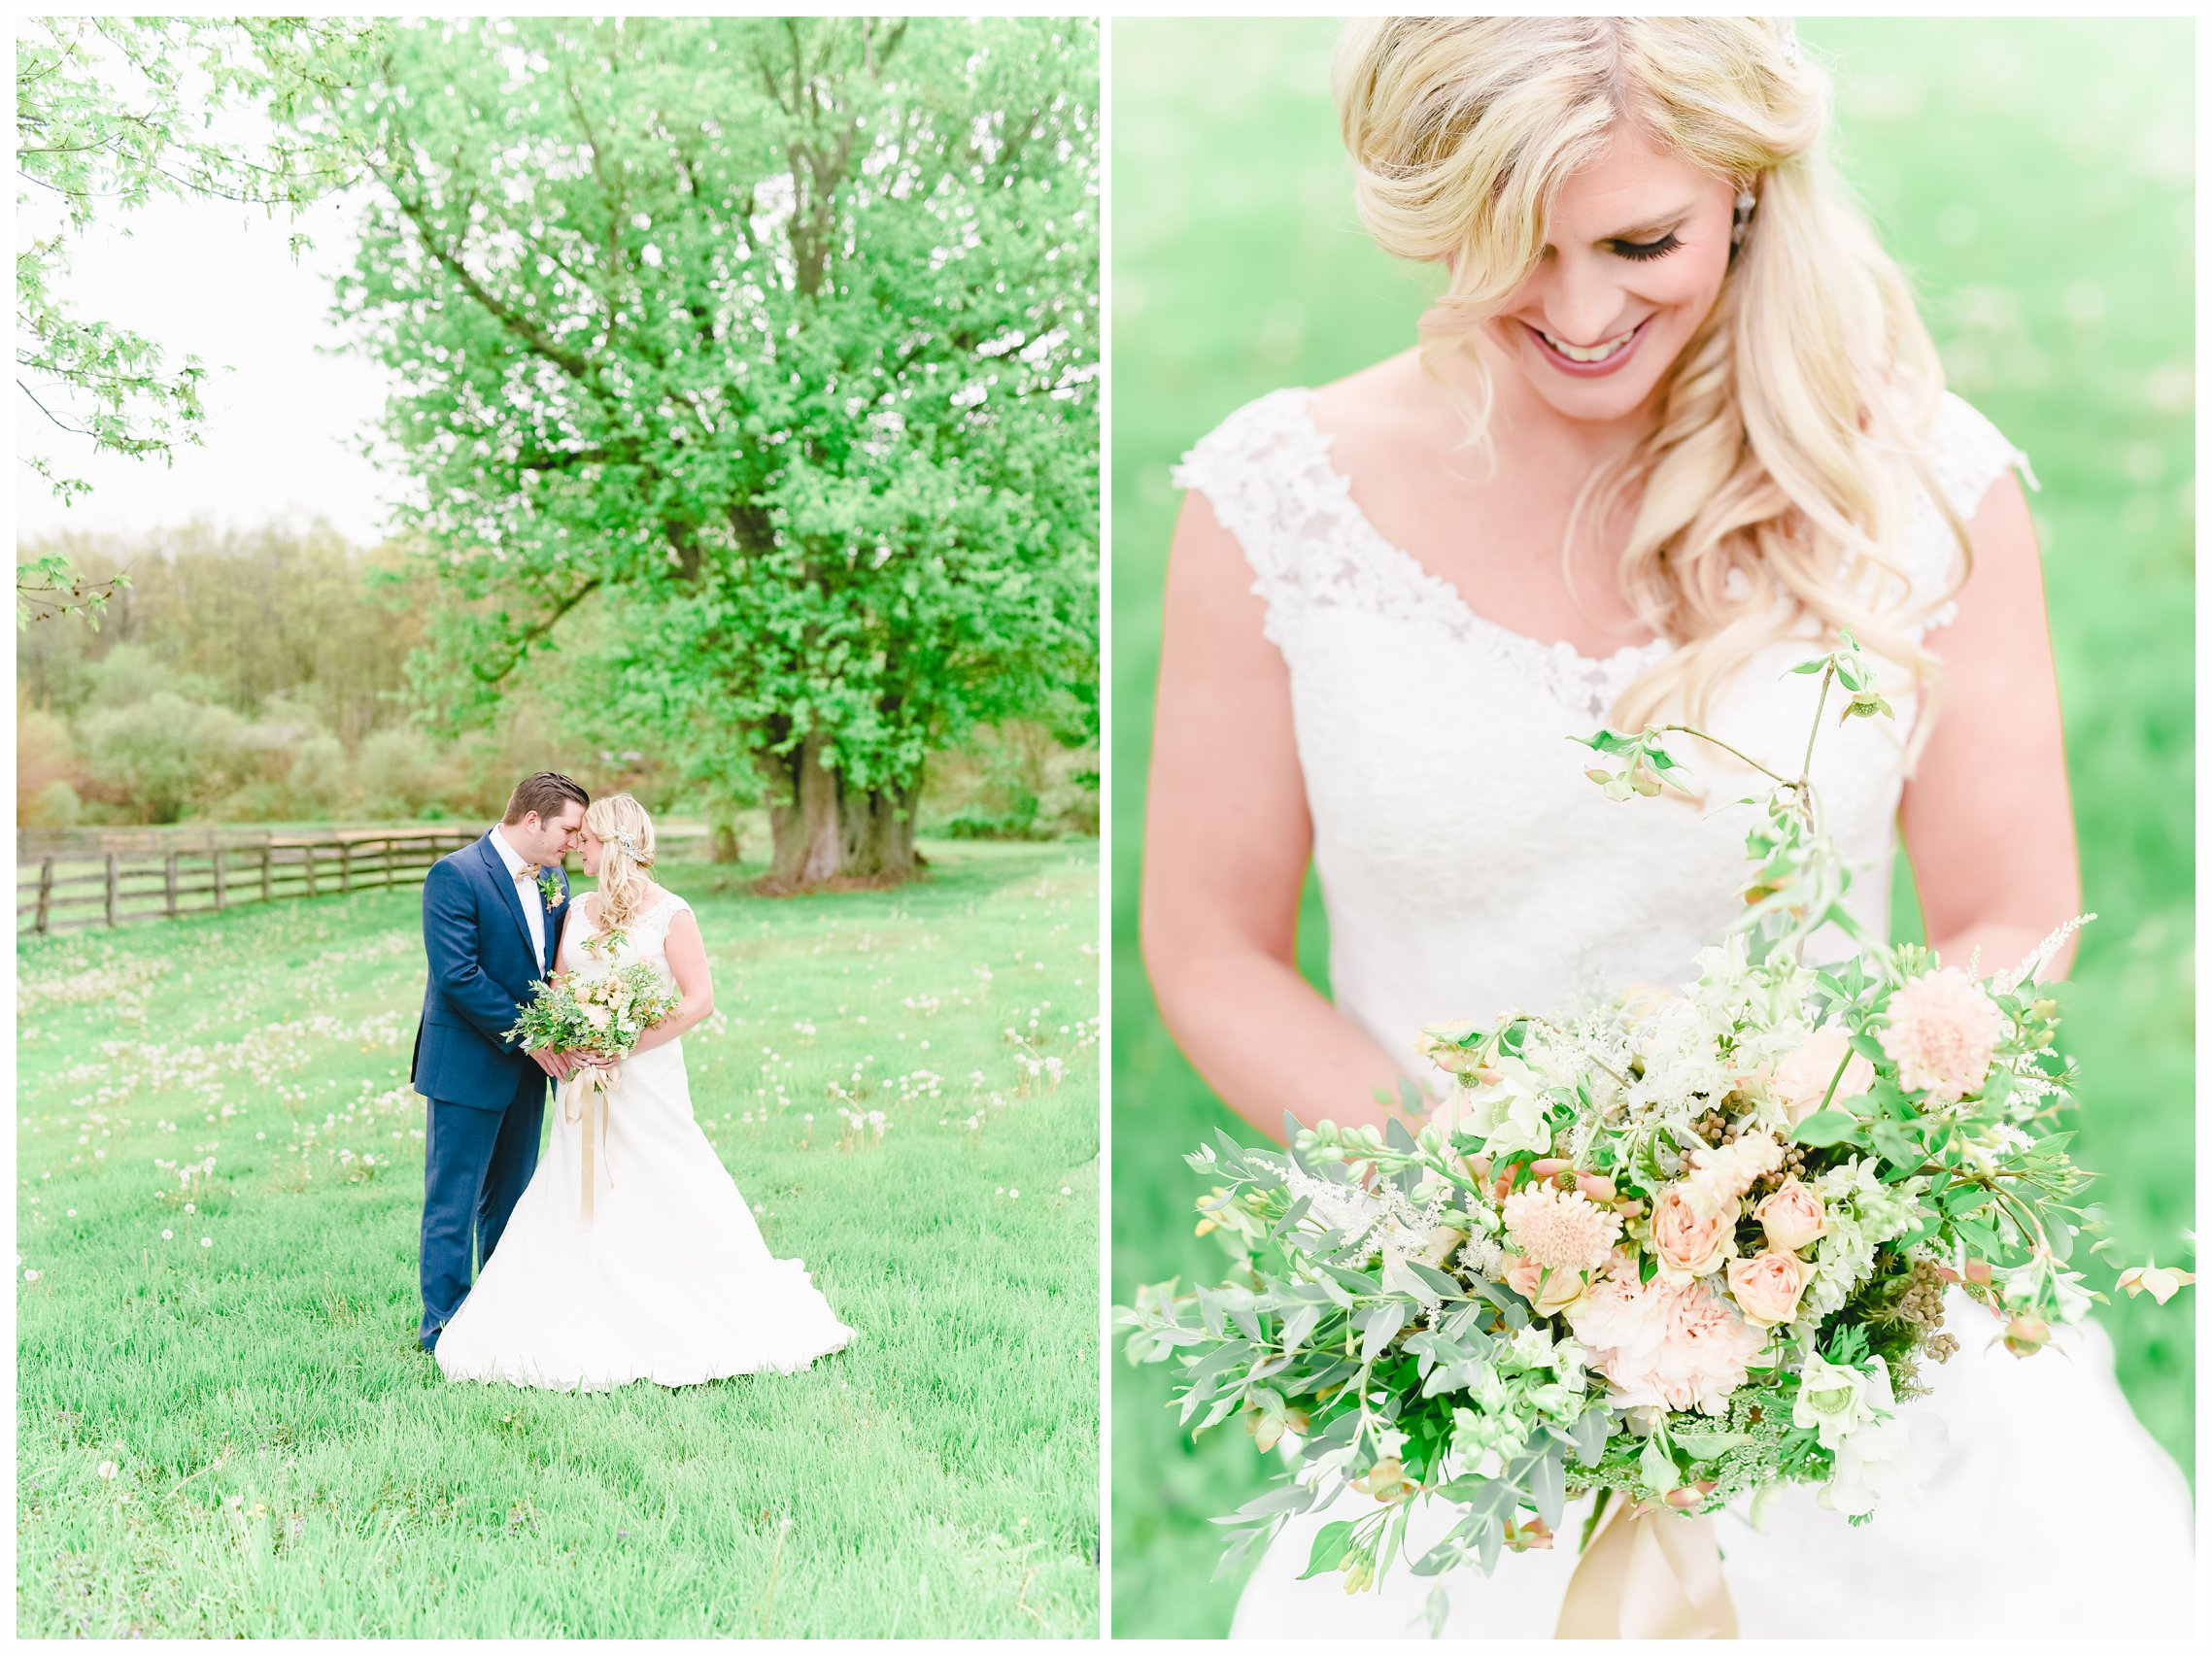 SterlingbrookFarm Styled Wedding